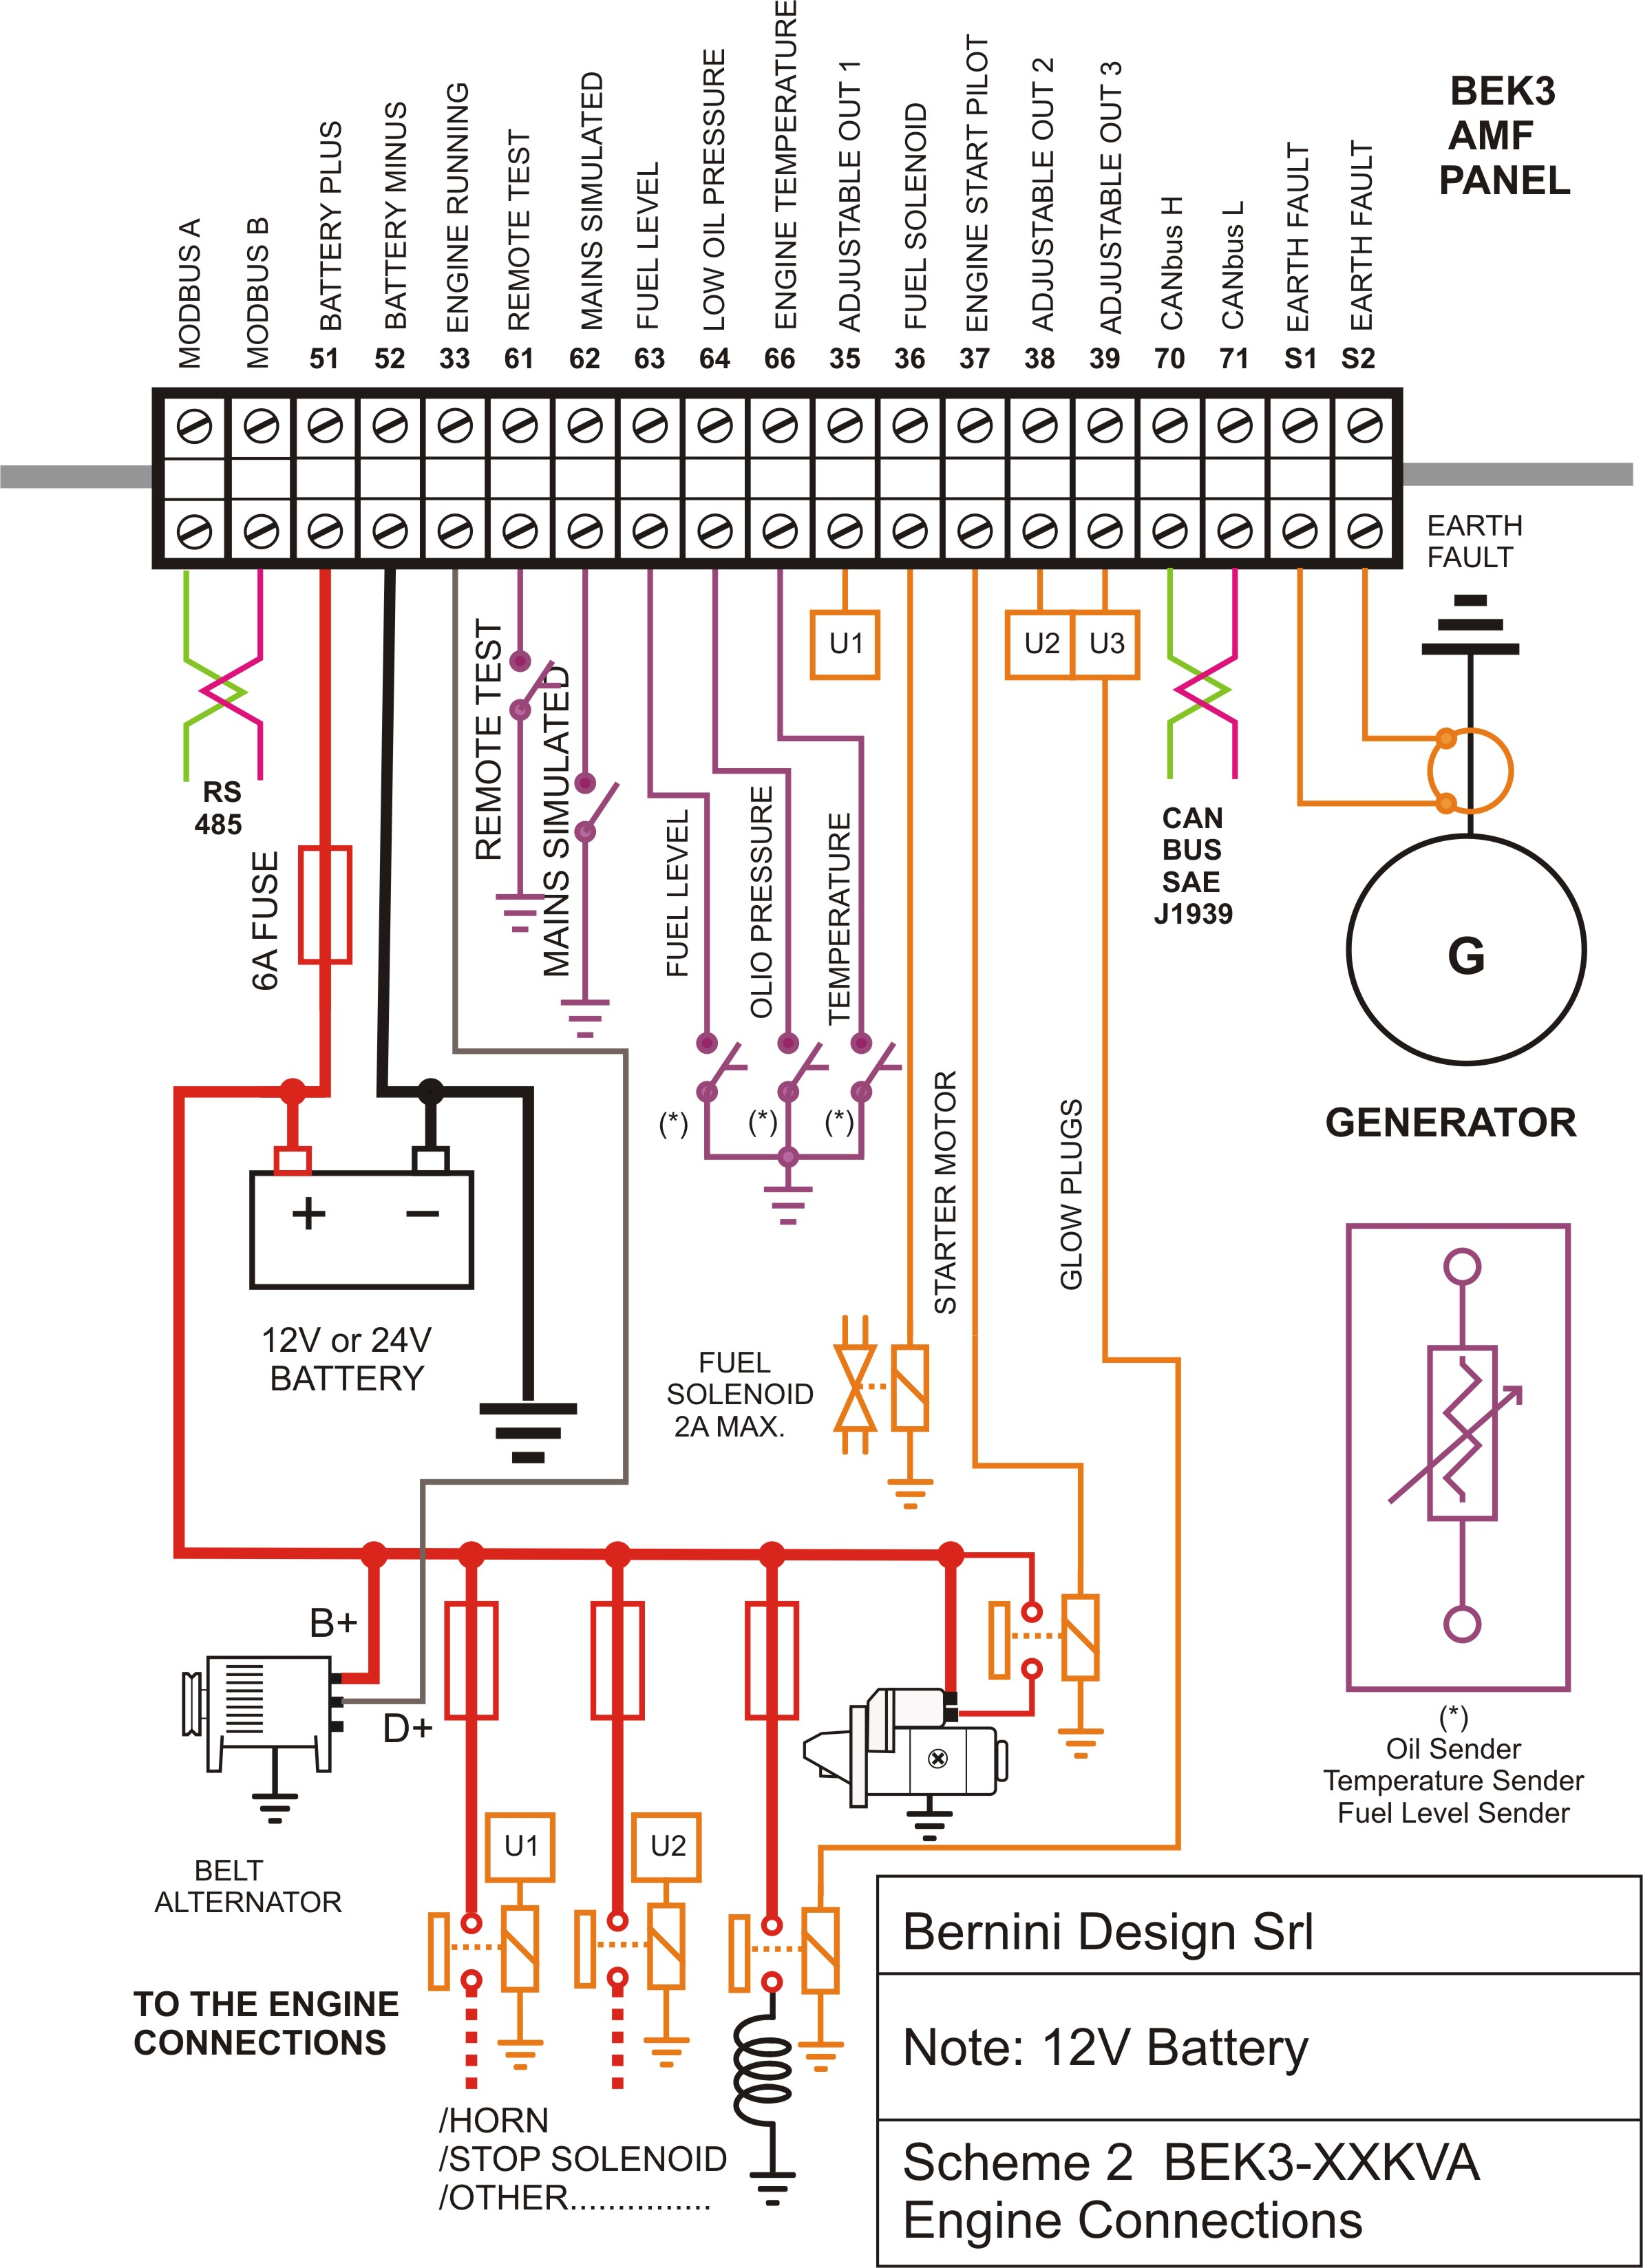 electrical control panel wiring diagram pdf Collection-2387x3295 Car Diagram Electrical Drawing Basics Pdf Zen Diagram Electric 15-a